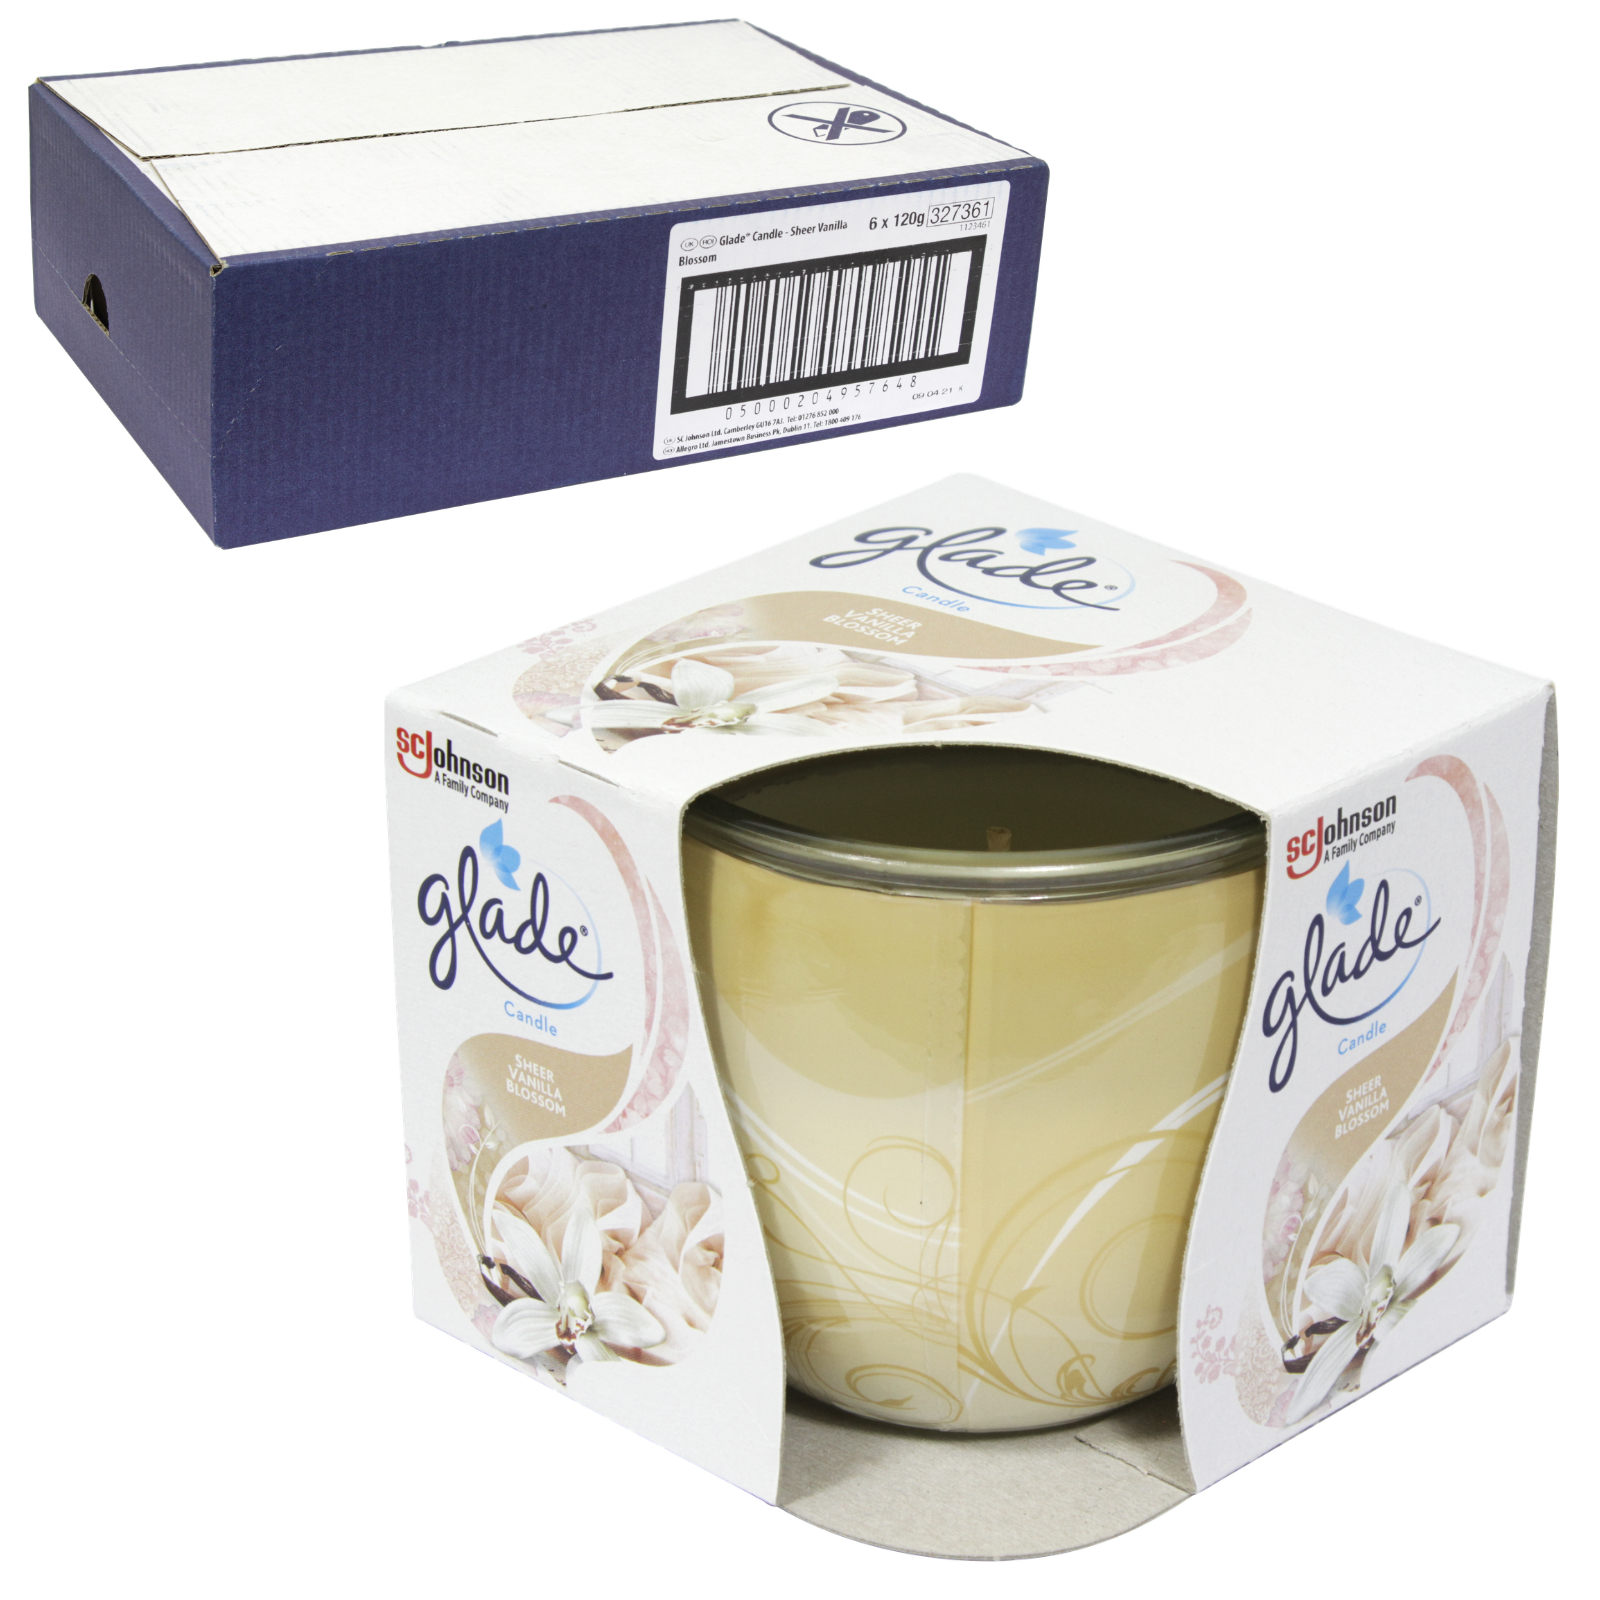 GLADE CANDLES 120GM HOMEMADE BISCUIT DELIGHT VANILLA CREAM & SUGAR X6